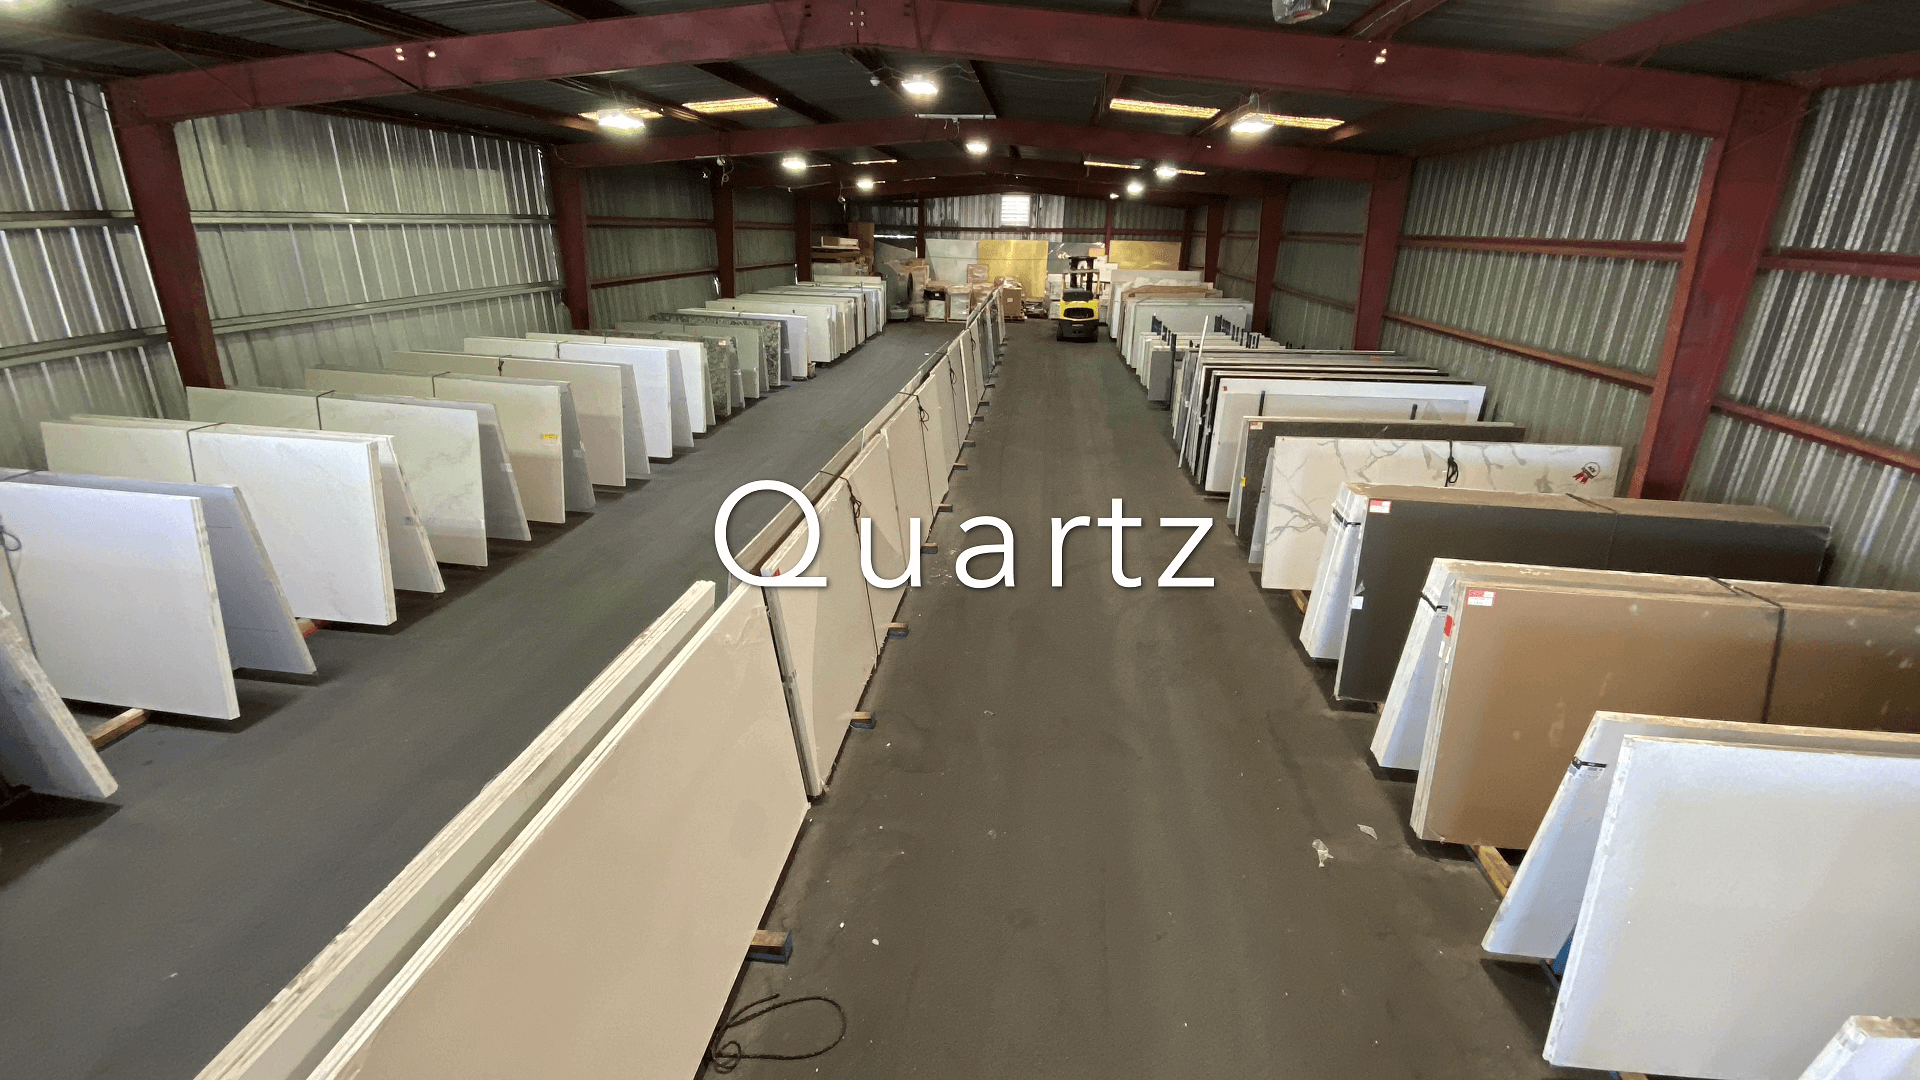 QUARTZ GALLERY AT STONEVILLE USA